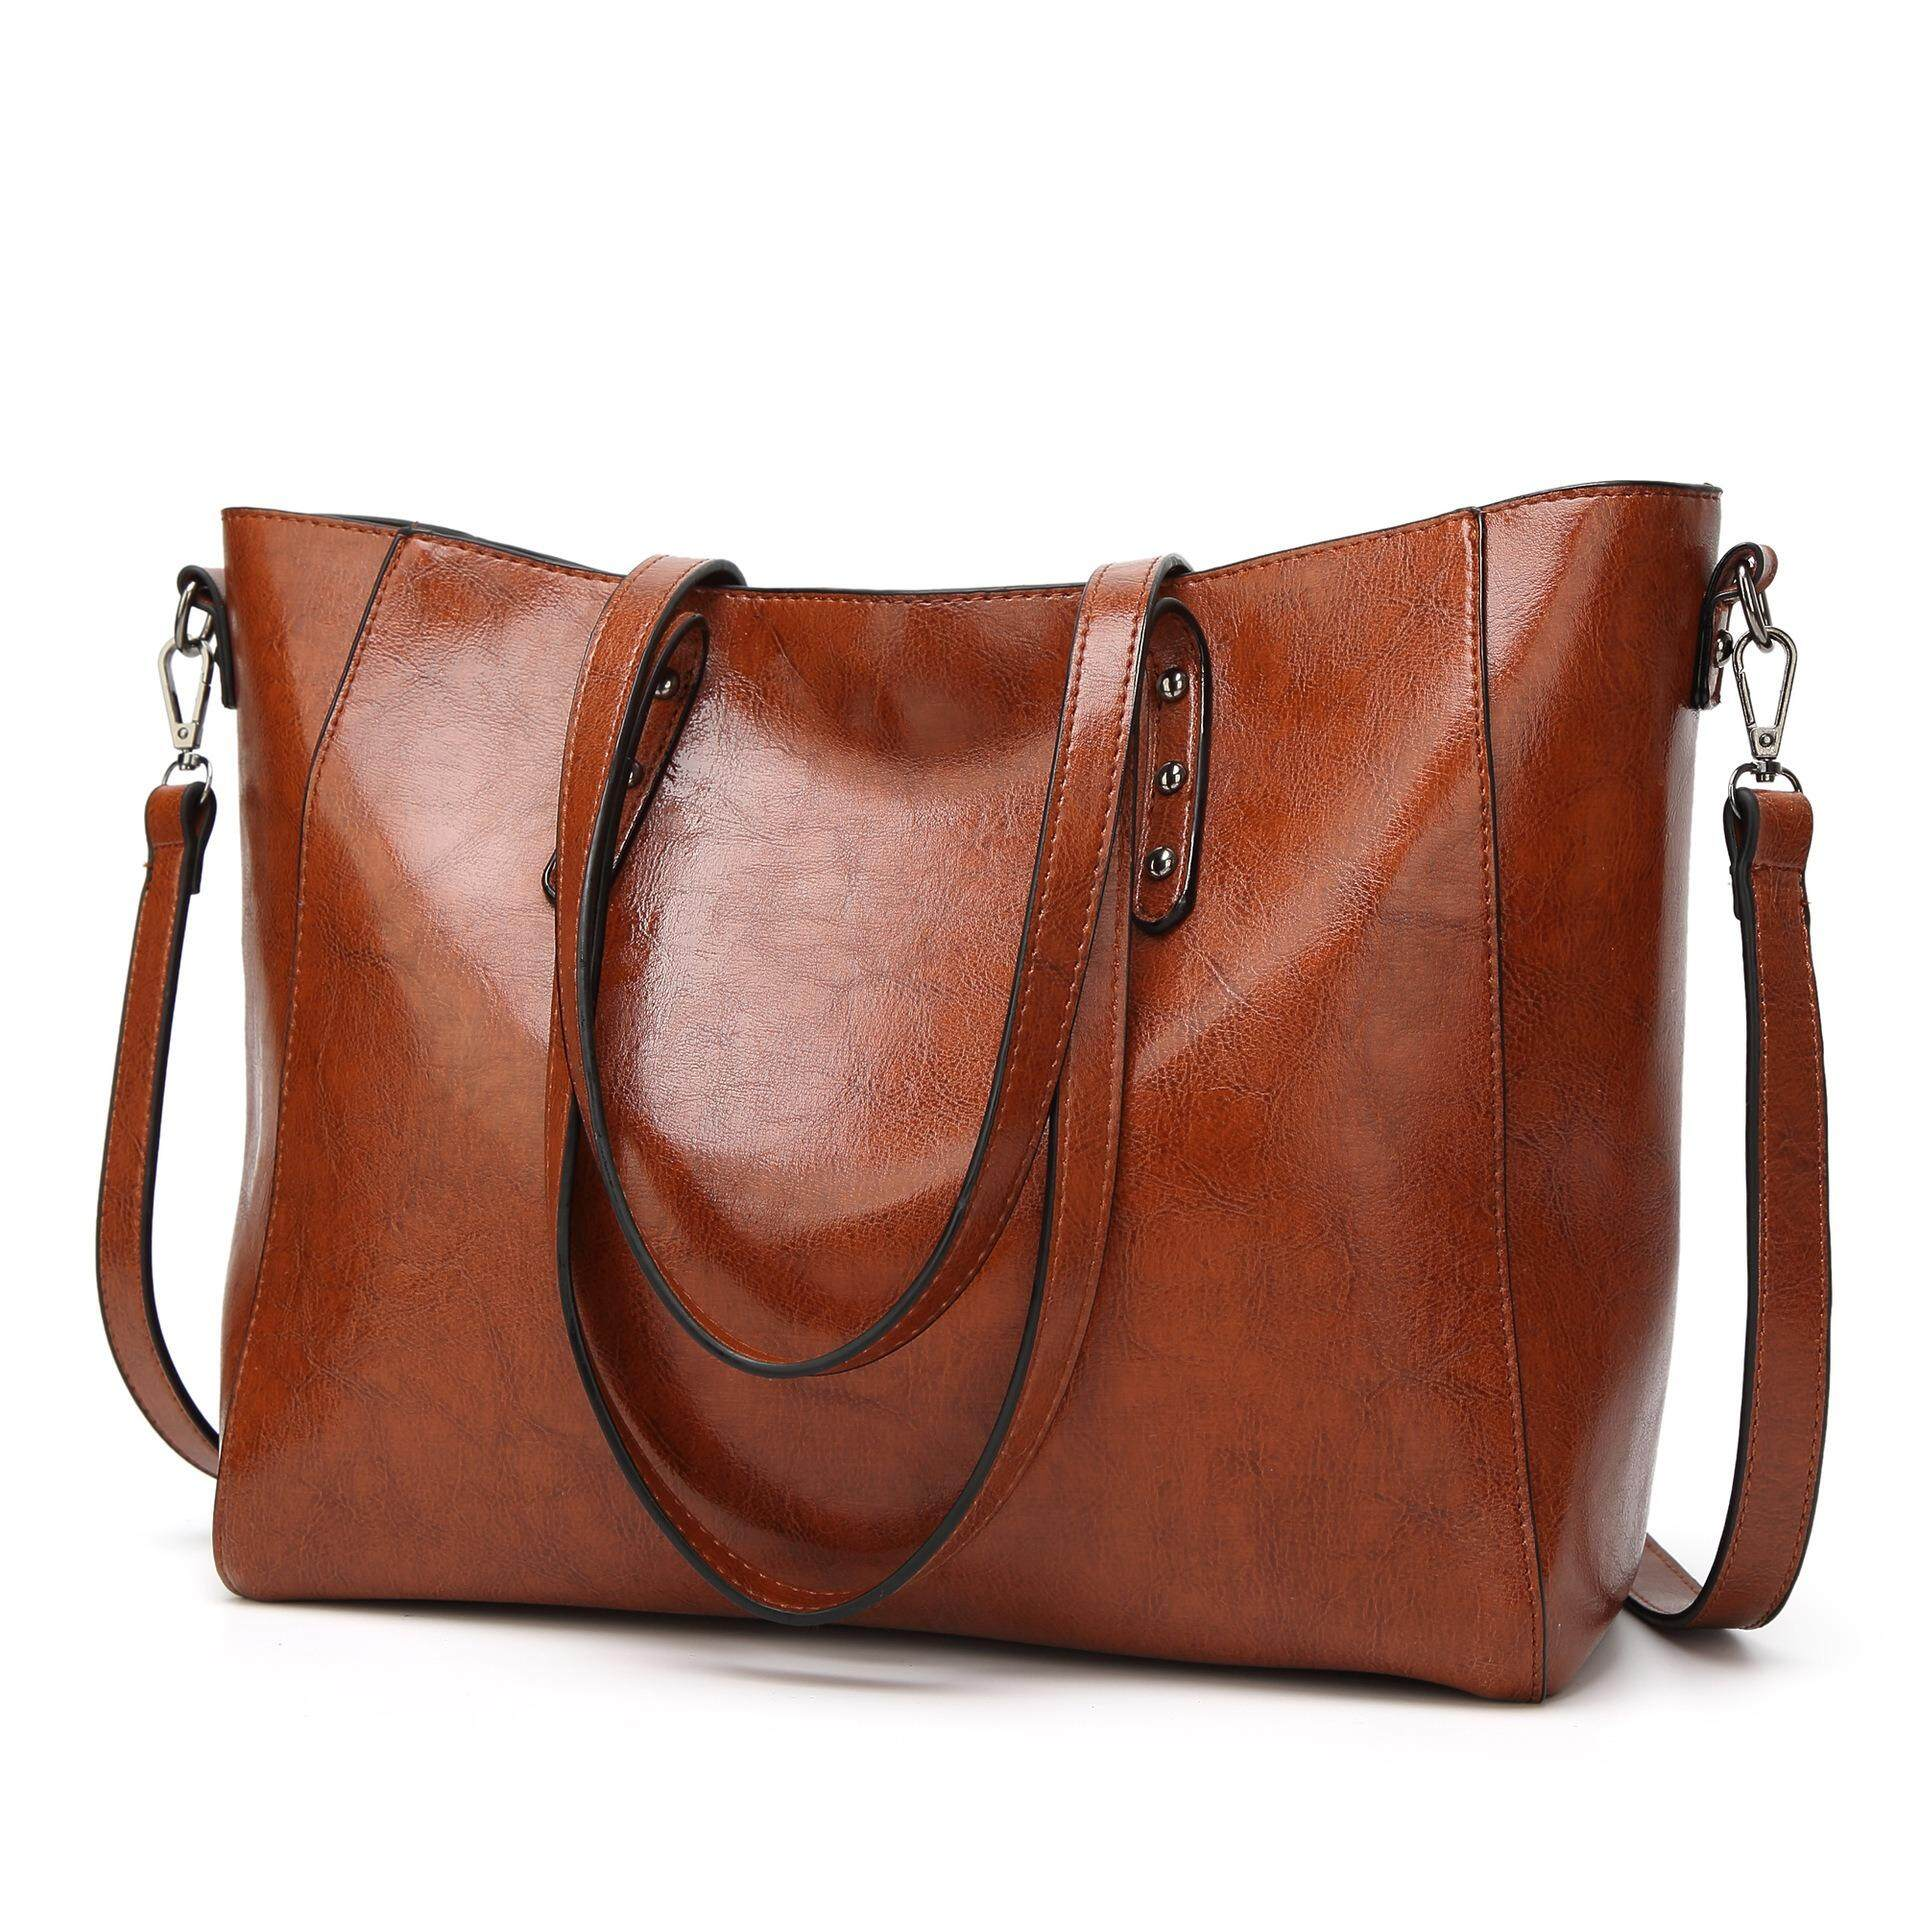 6fc8c591b5 2018 Spring New Oil wax Women's Leather Handbags Luxury Lady Hand Bags With  Purse Pocket Women